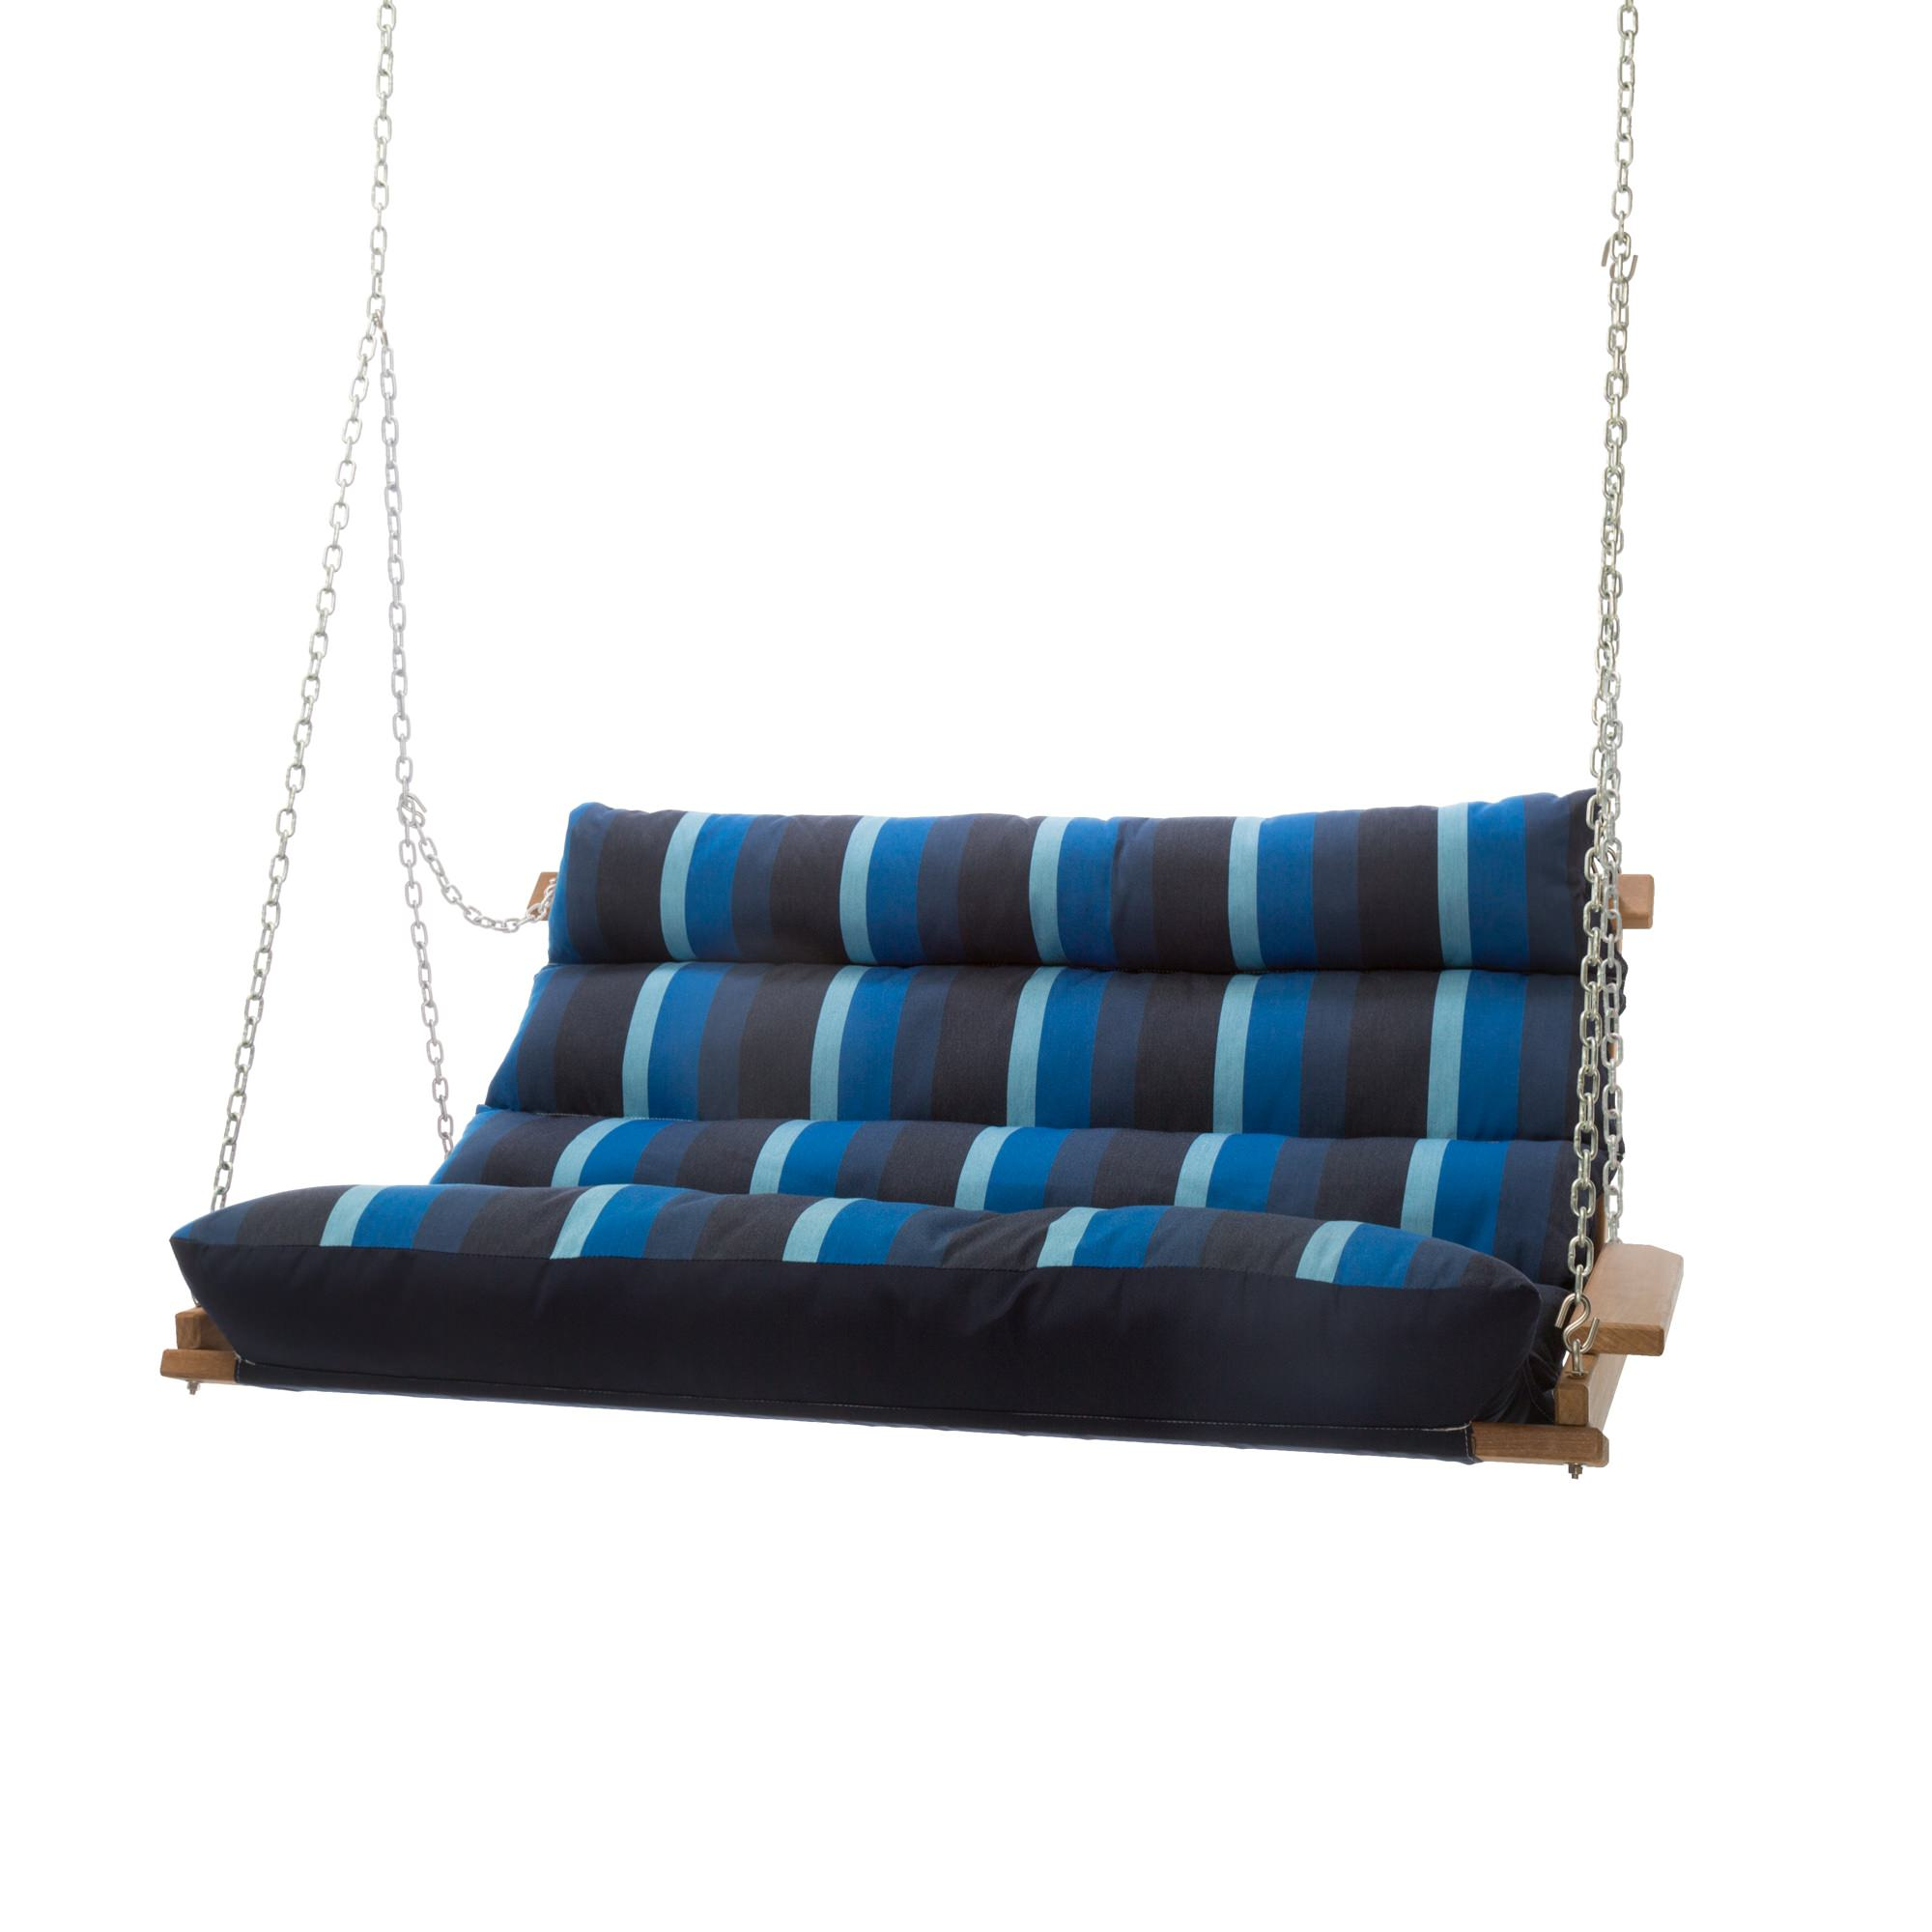 48 Inch Replacement Cushion For 60 Inch Wide Deluxe Double